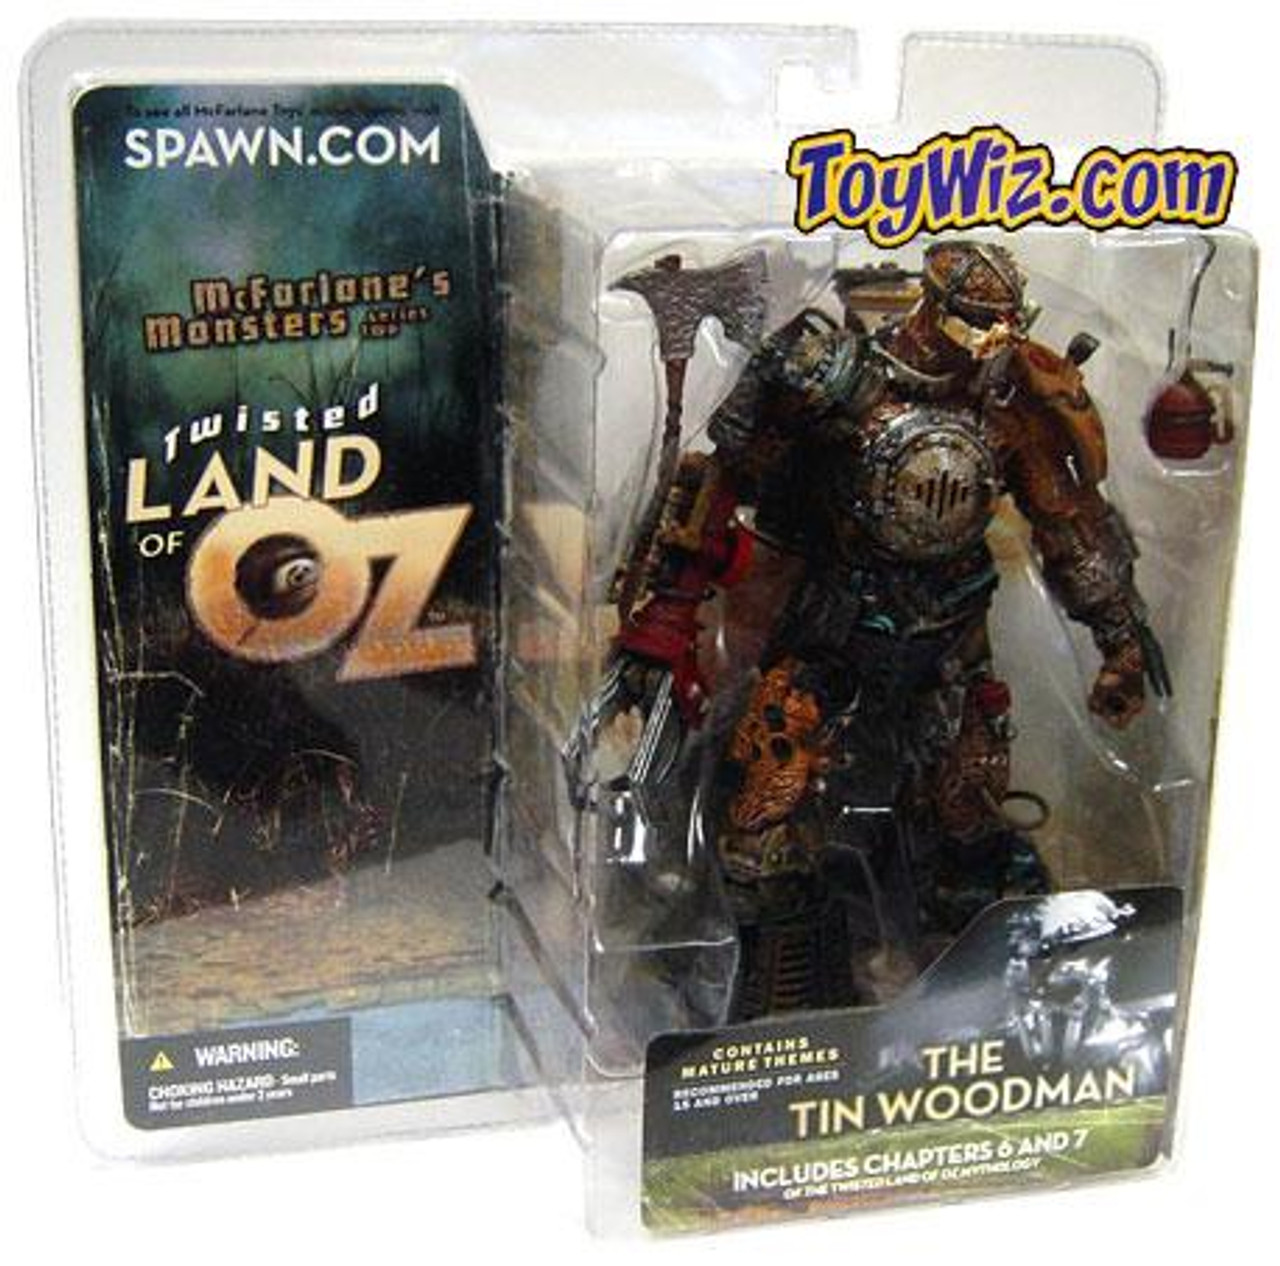 McFarlane Toys McFarlane's Monsters Twisted Land of Oz The Tin Woodsman Action Figure